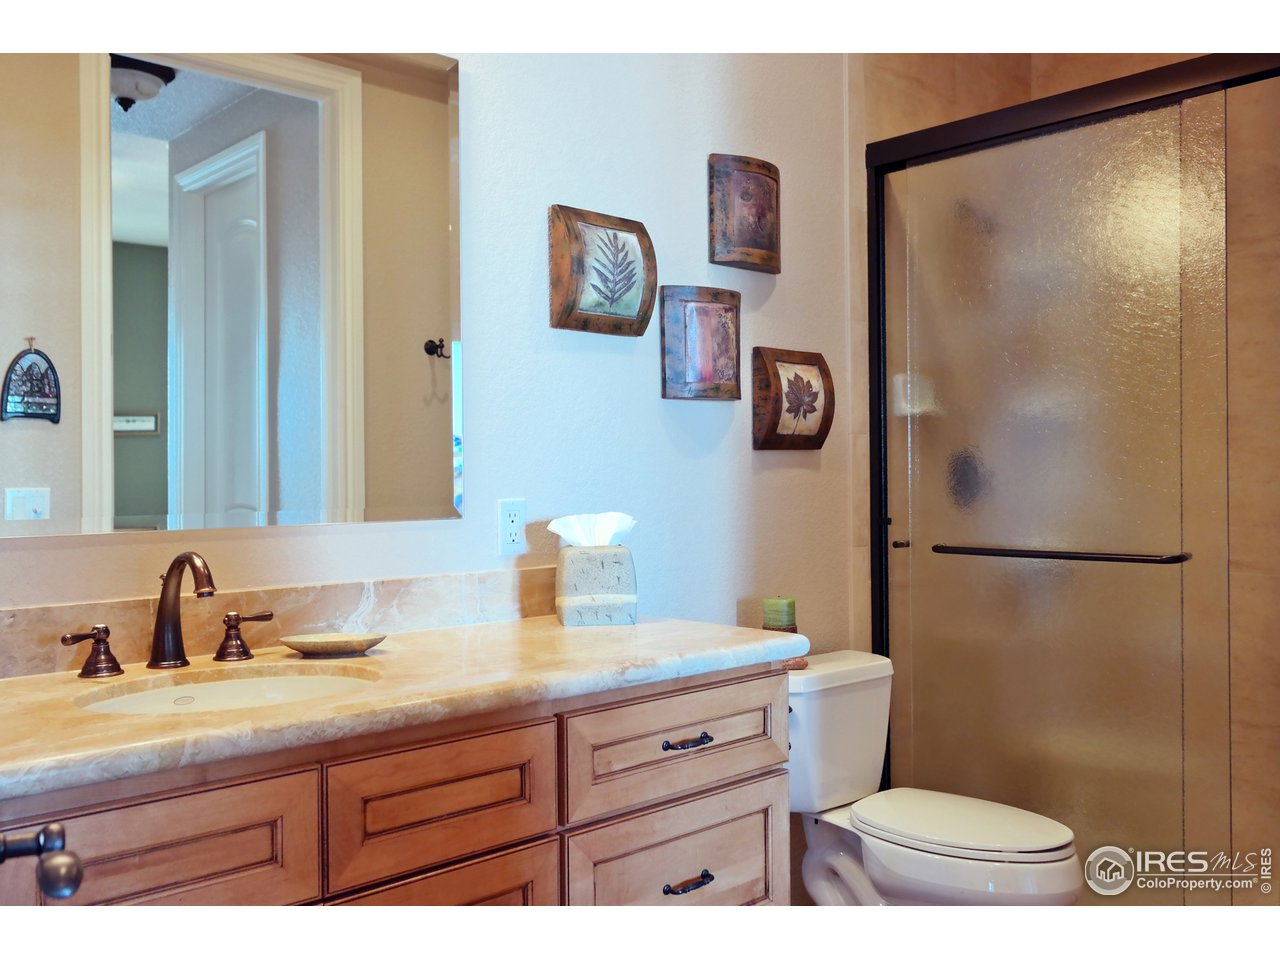 3/4 Bath Accessed from Bedroom & Family Room